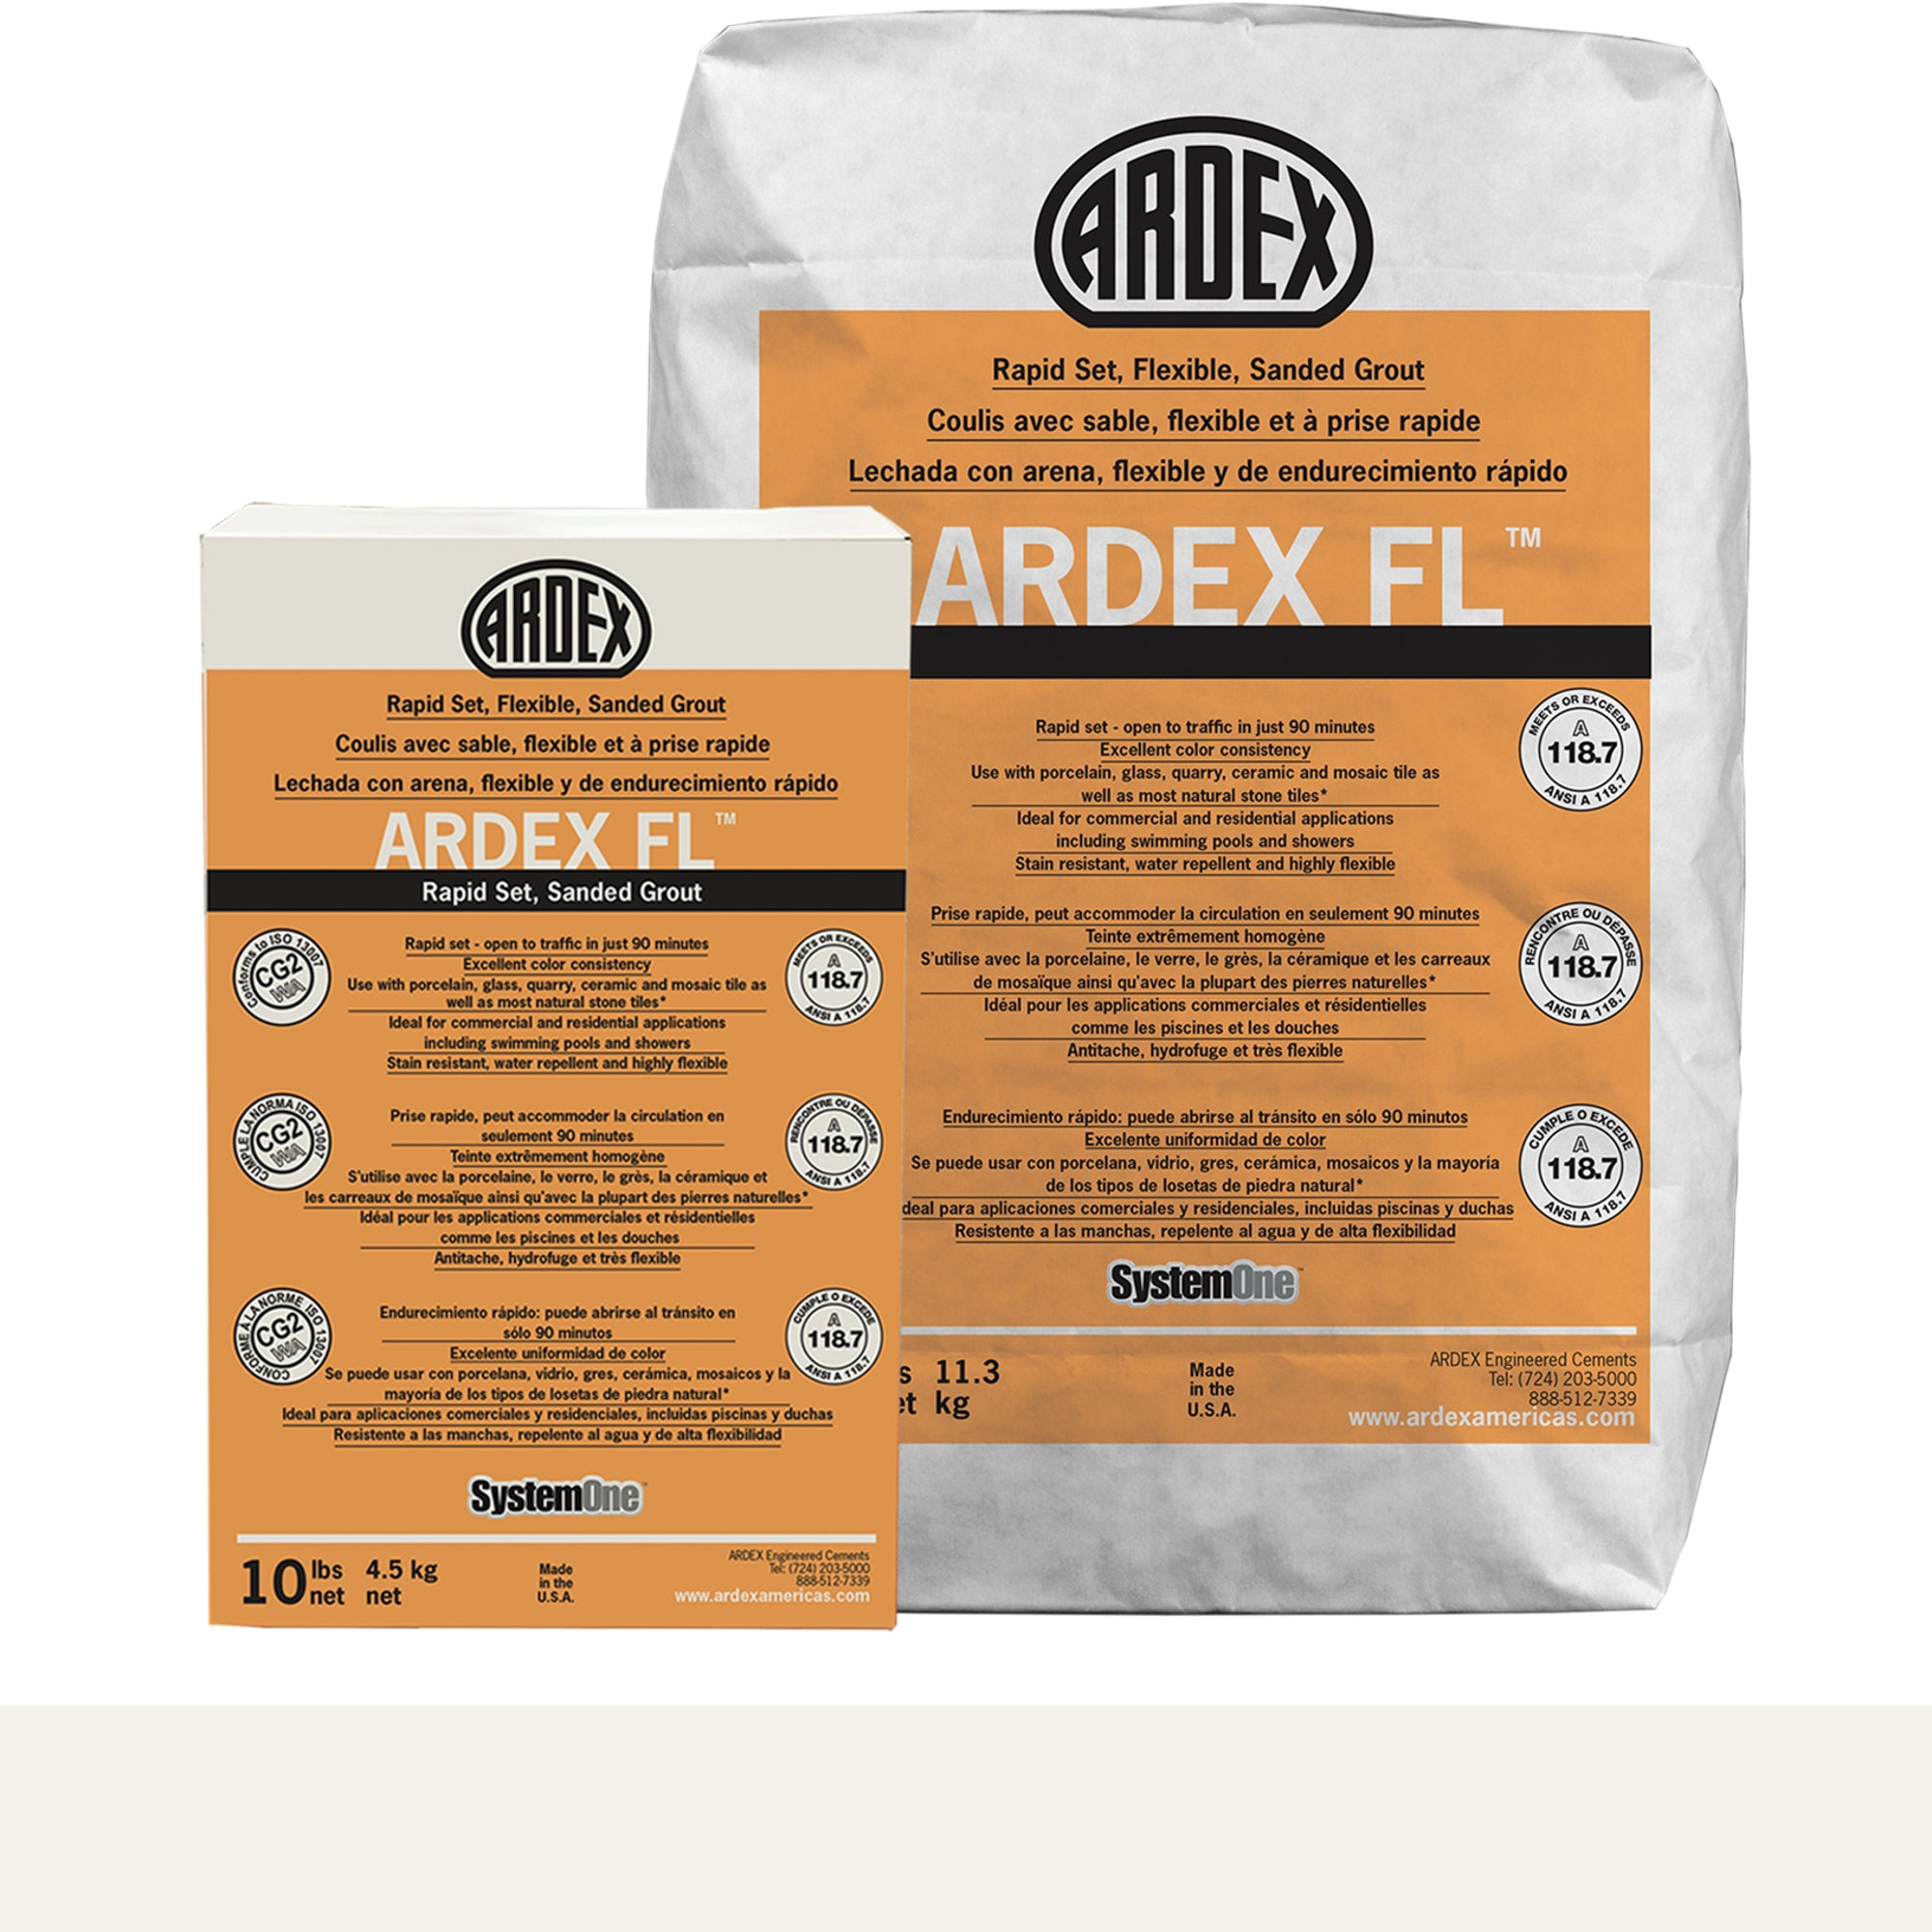 Ardex Fl Grout 19-Silver Shimmer 10-Lb Bag Grout Sanded product photo